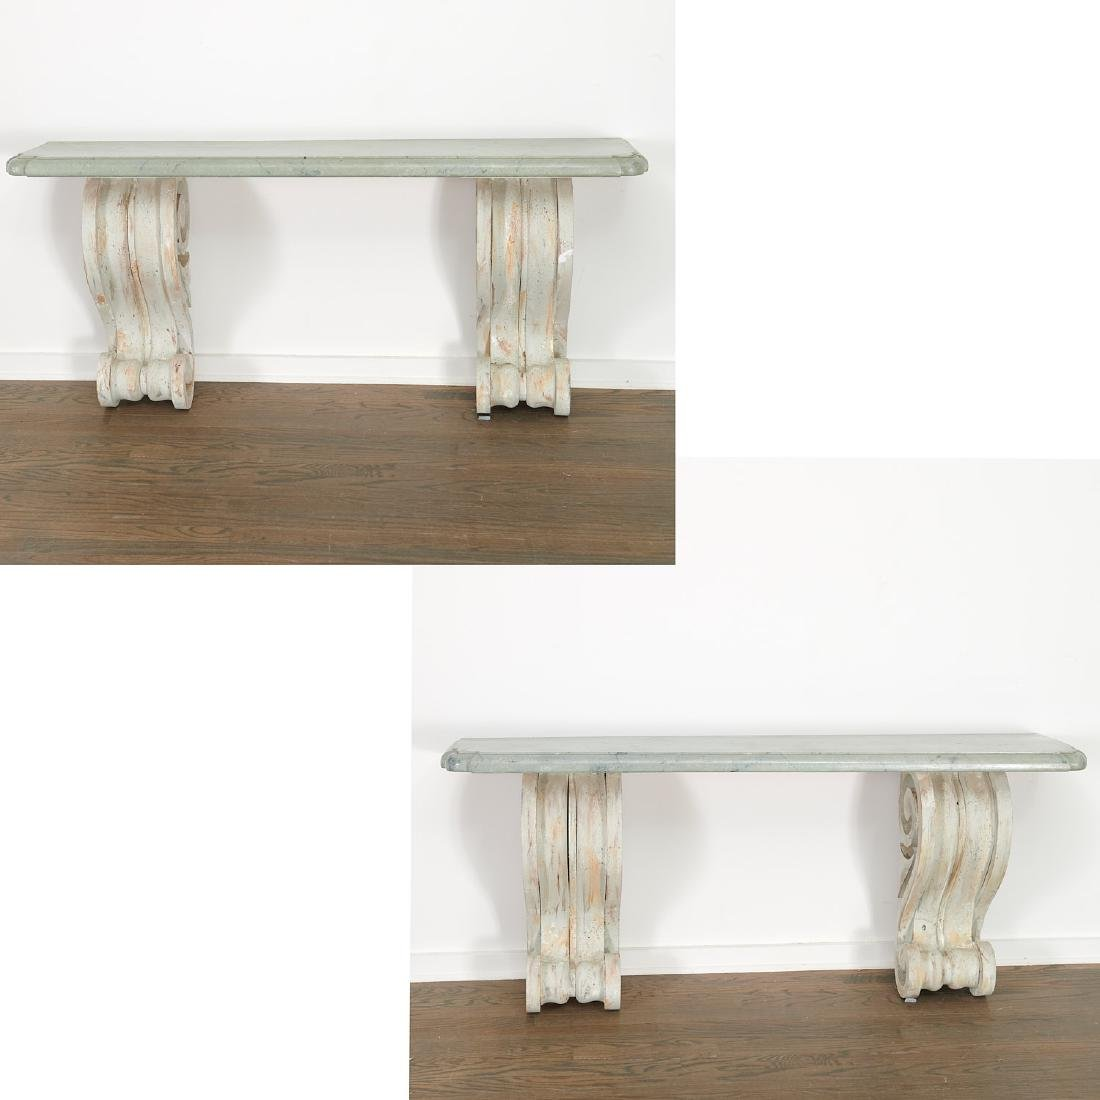 Pair Neo-Classical volute bracket consoles